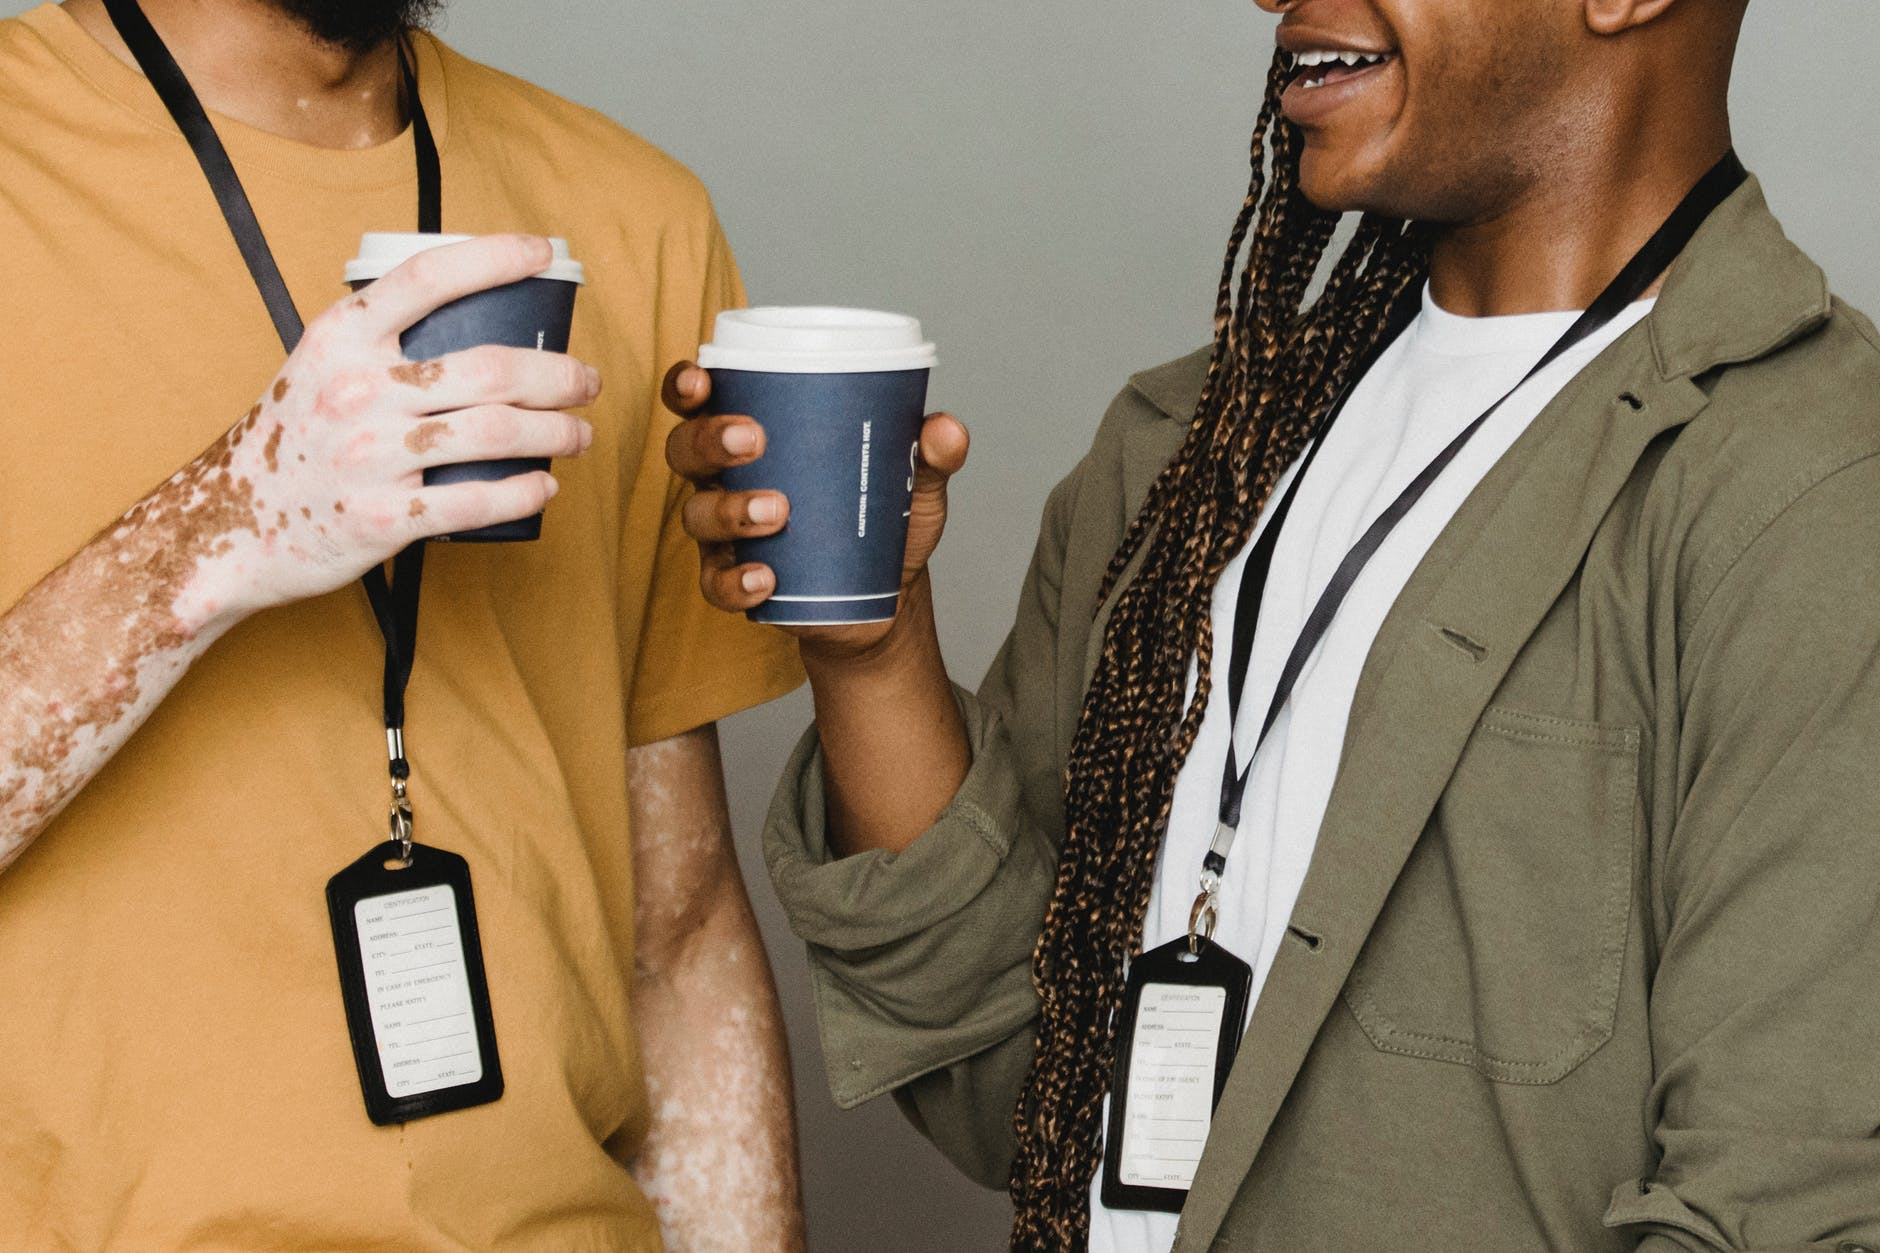 two men with lanyards and holding coffee having conversation, image by Armin Rimoldi on Pexels.com